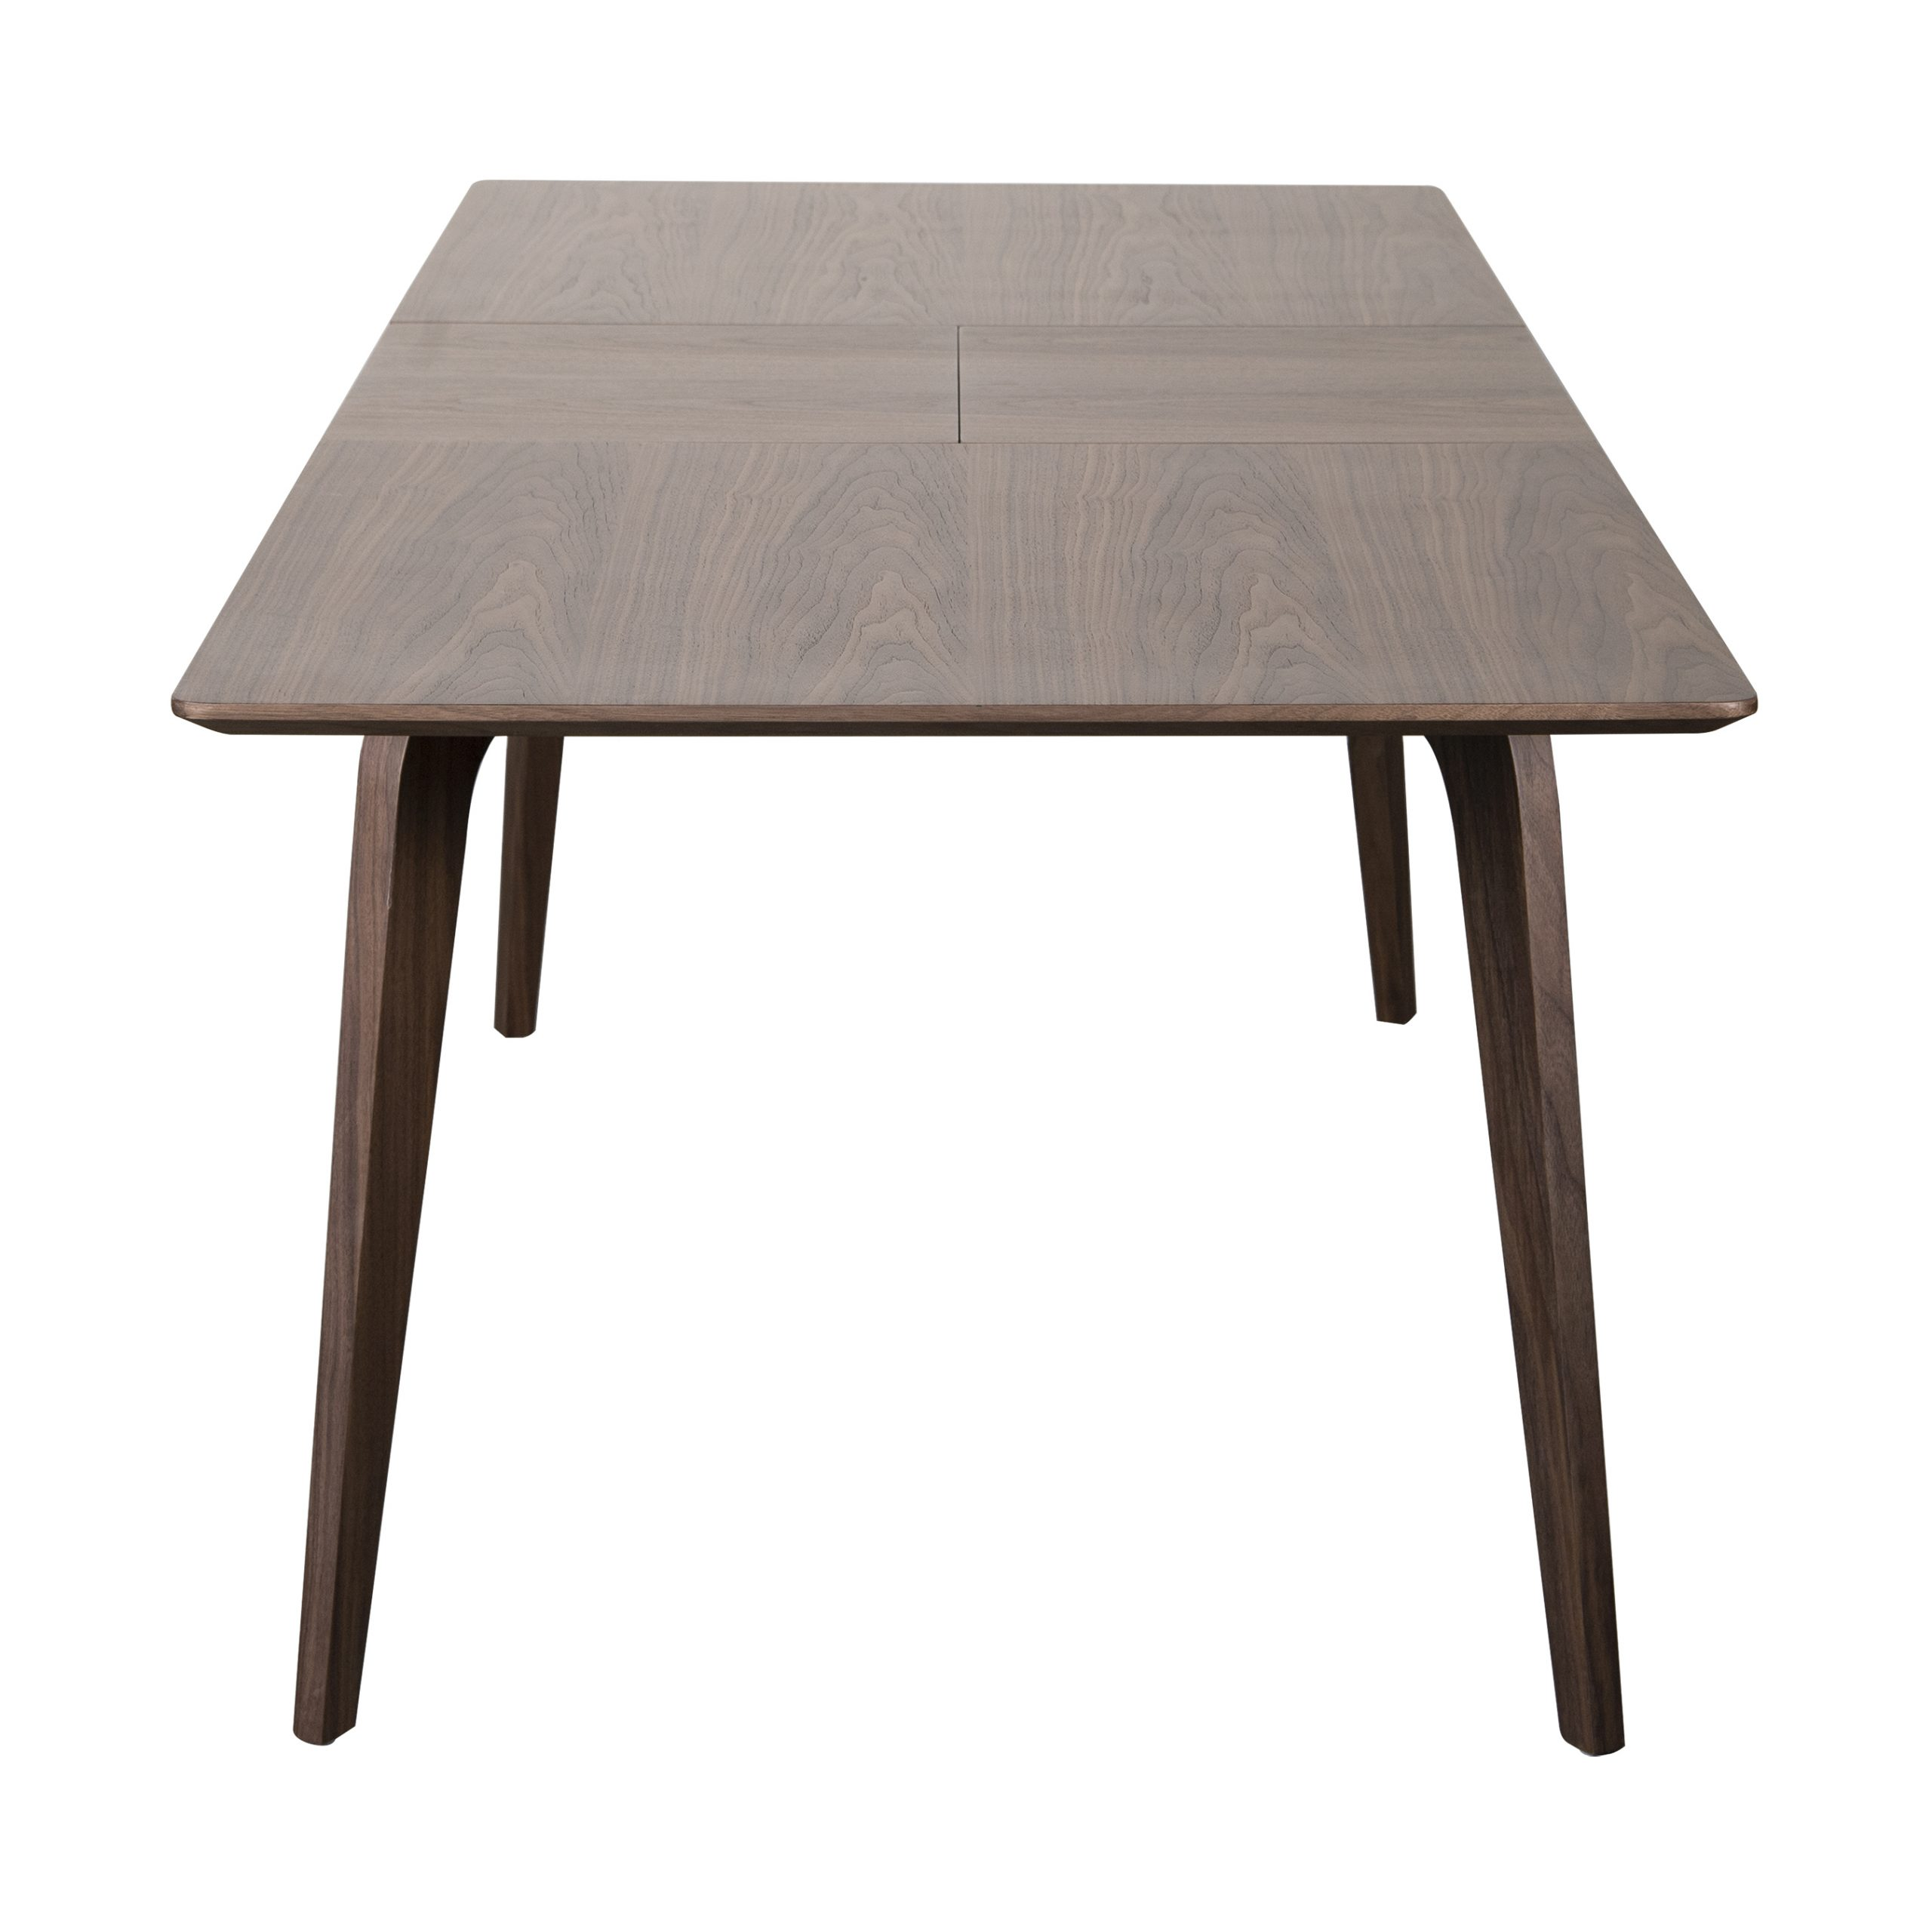 Lawrence Extension Dining Table – Euro Style With Regard To Best And Newest Mateo Extending Dining Tables (View 6 of 25)